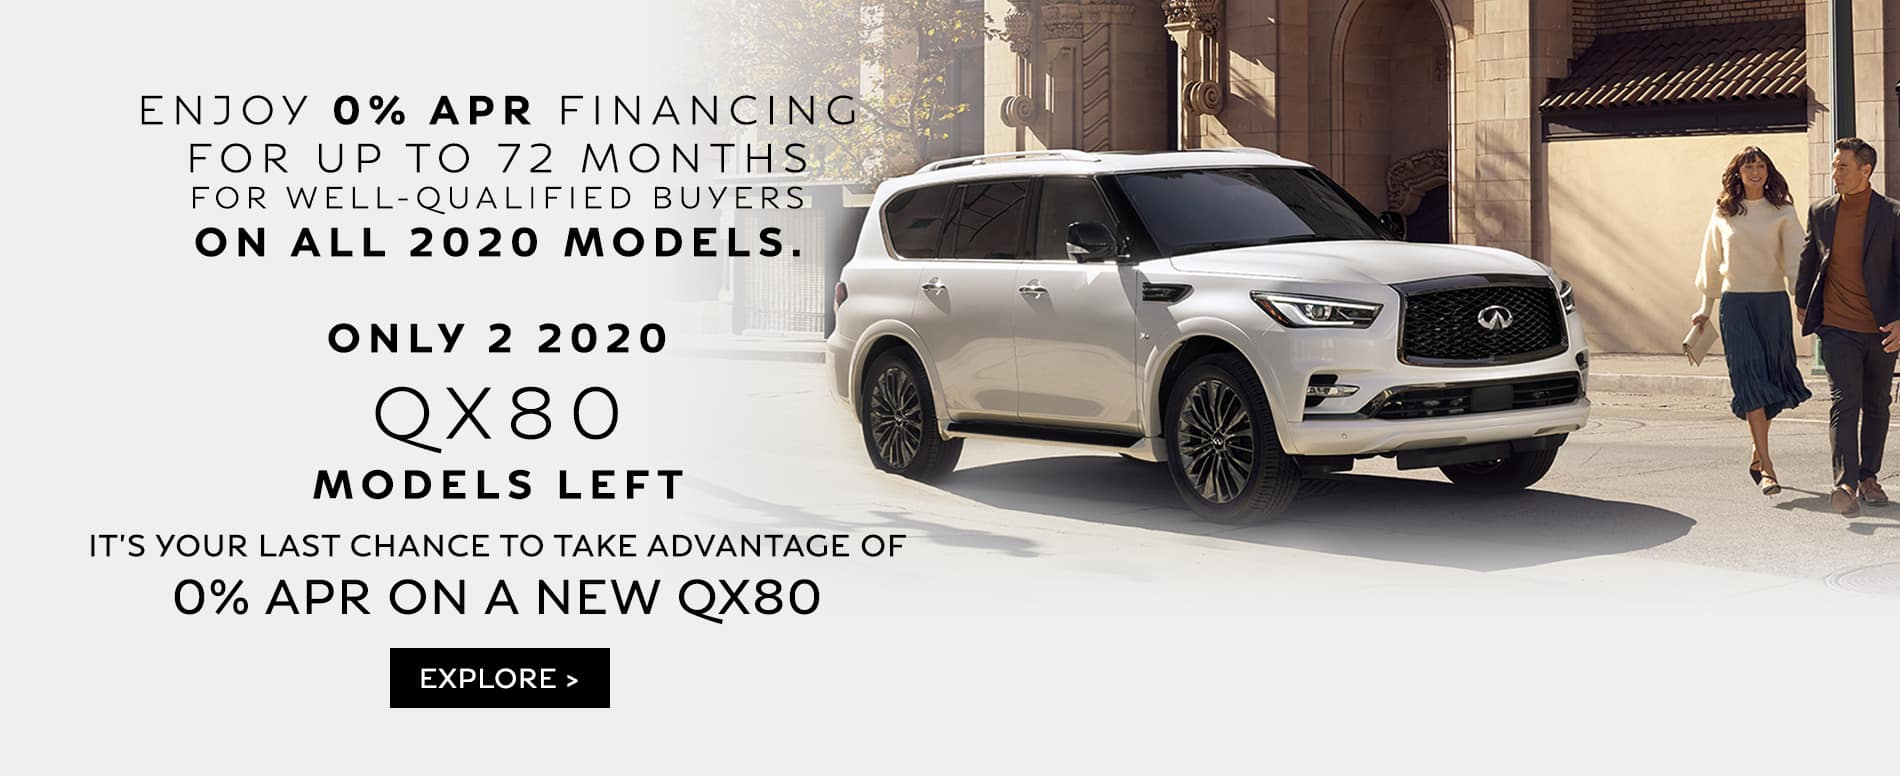 Only 2 QX80 Remaining for 0% APR